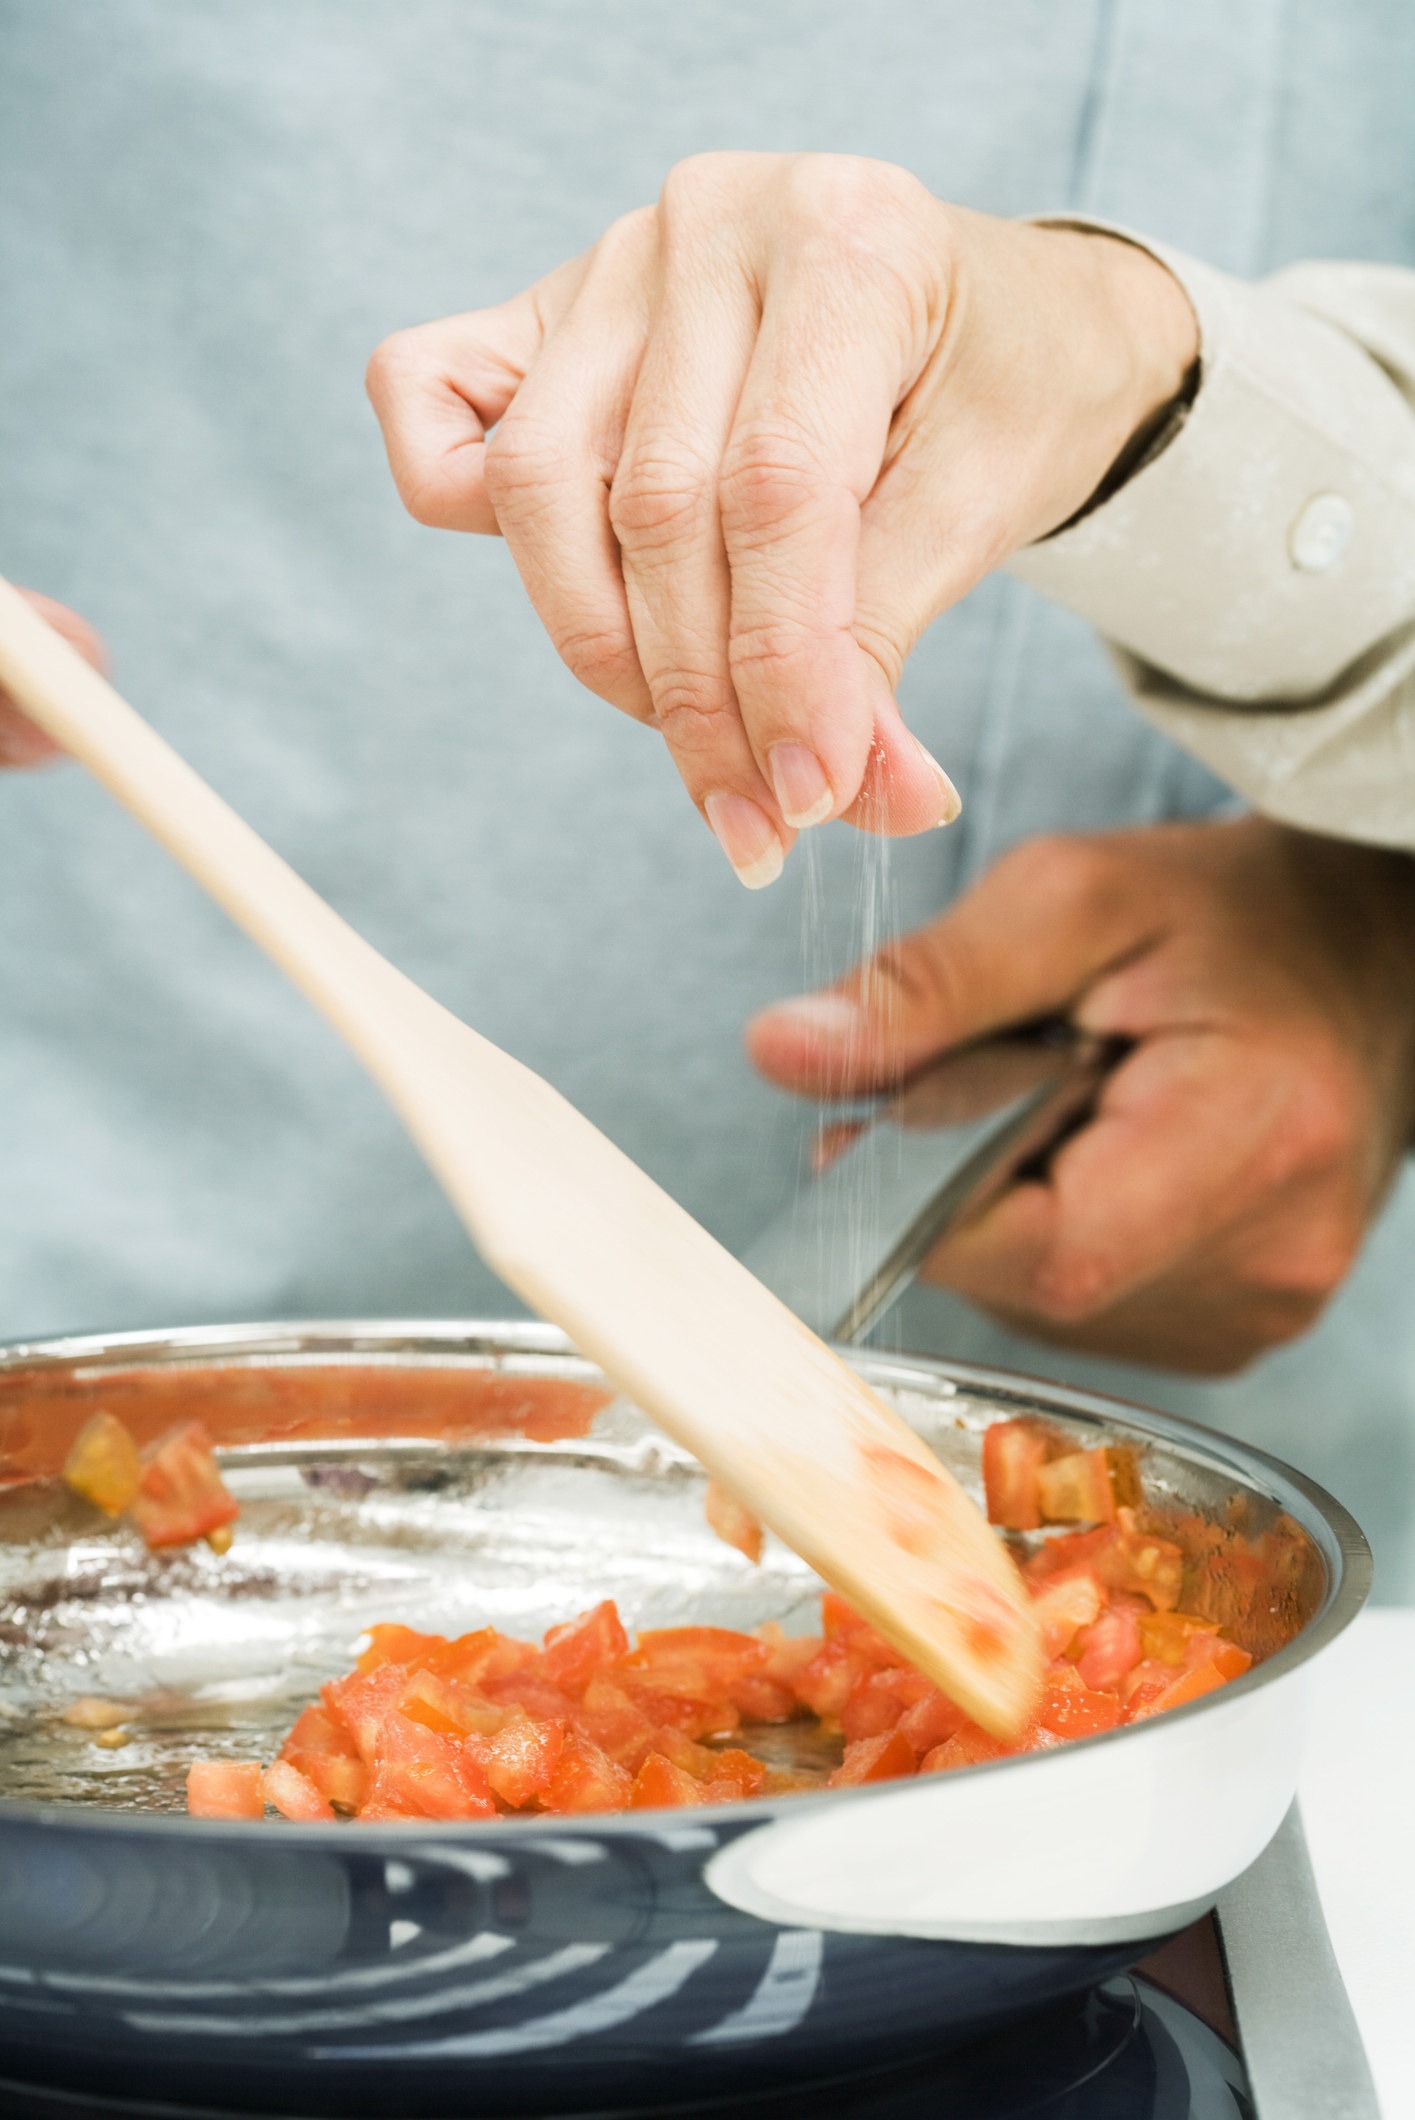 A woman salting vegetables in a skillet.